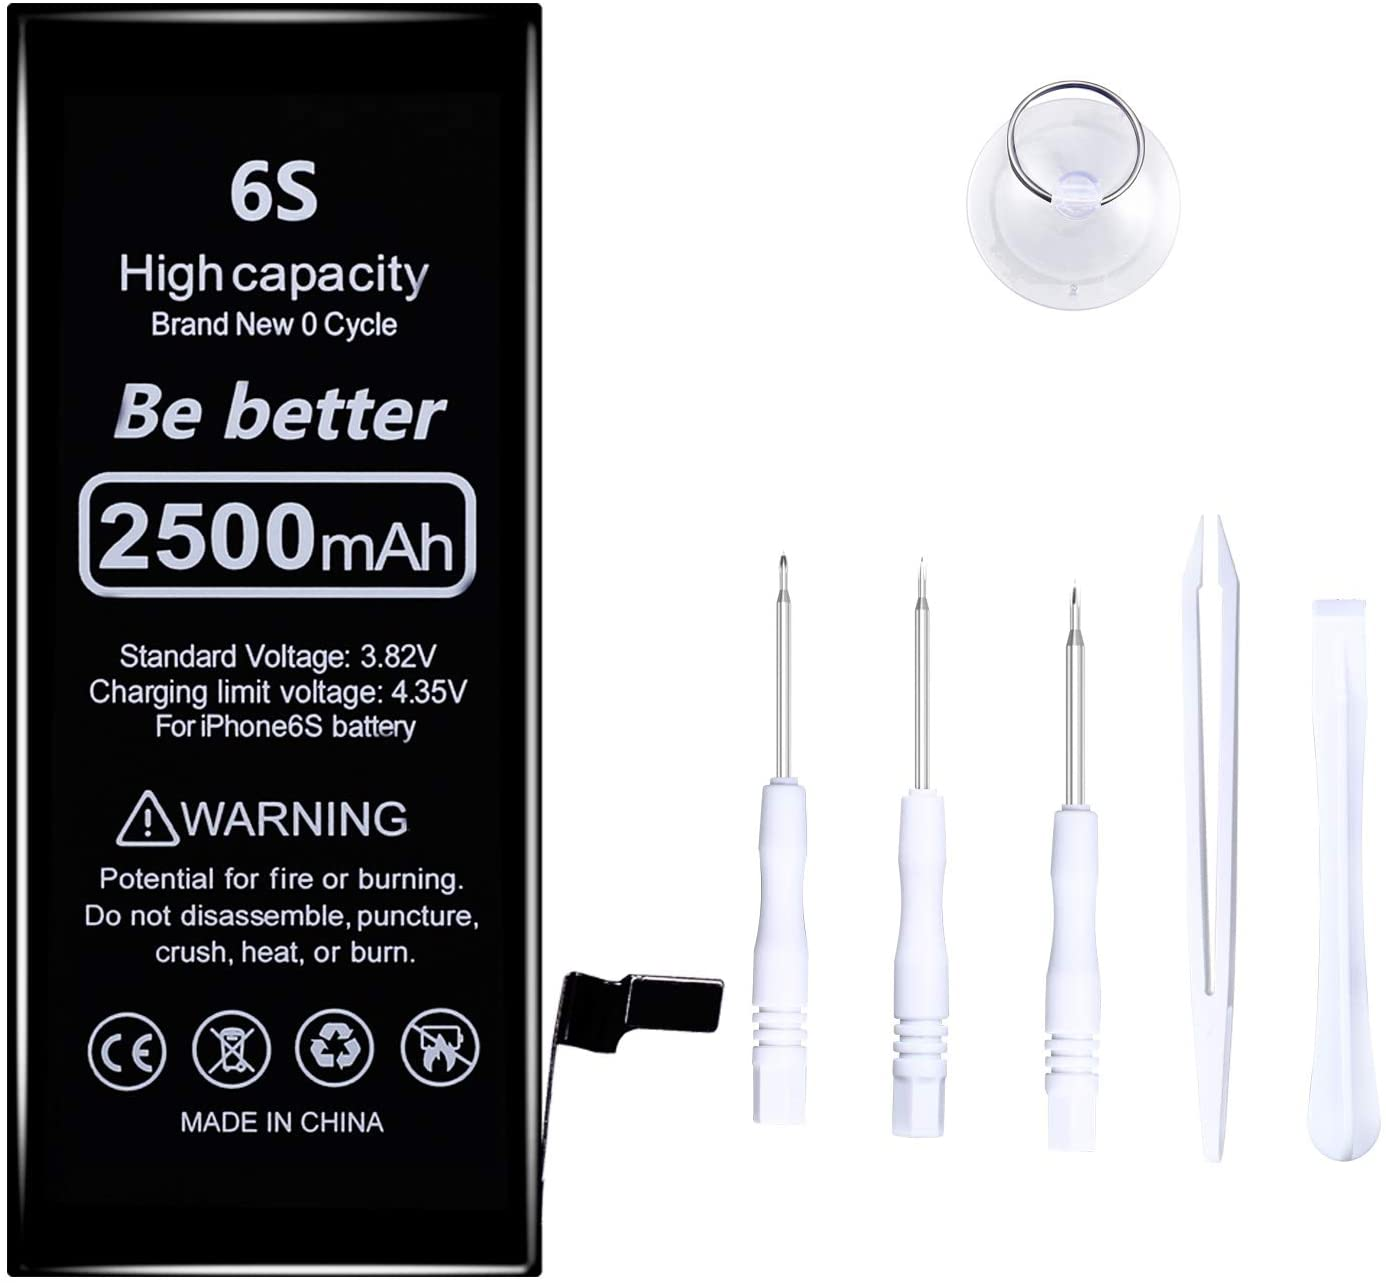 2500mAh Battery Compatible for iPhone 6s Cycle - High Capacity Li-ion Replacement Battery with a Complete Repair Tool Kit (for iPhone 6S)